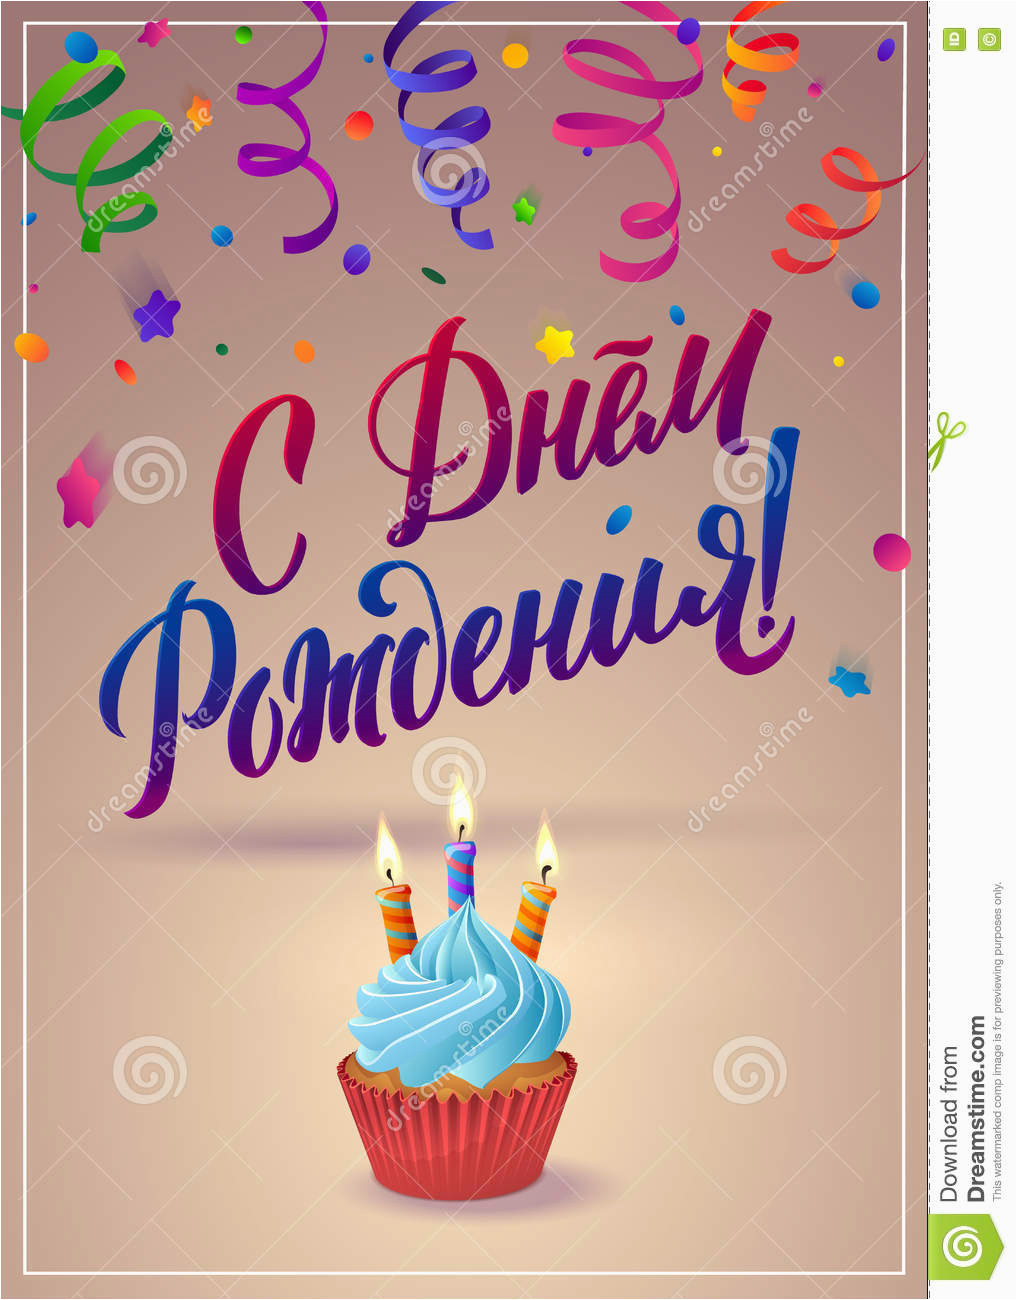 Russian Birthday Greeting Cards Happy Birthday Russian Calligraphy - Free Printable Russian Birthday Cards